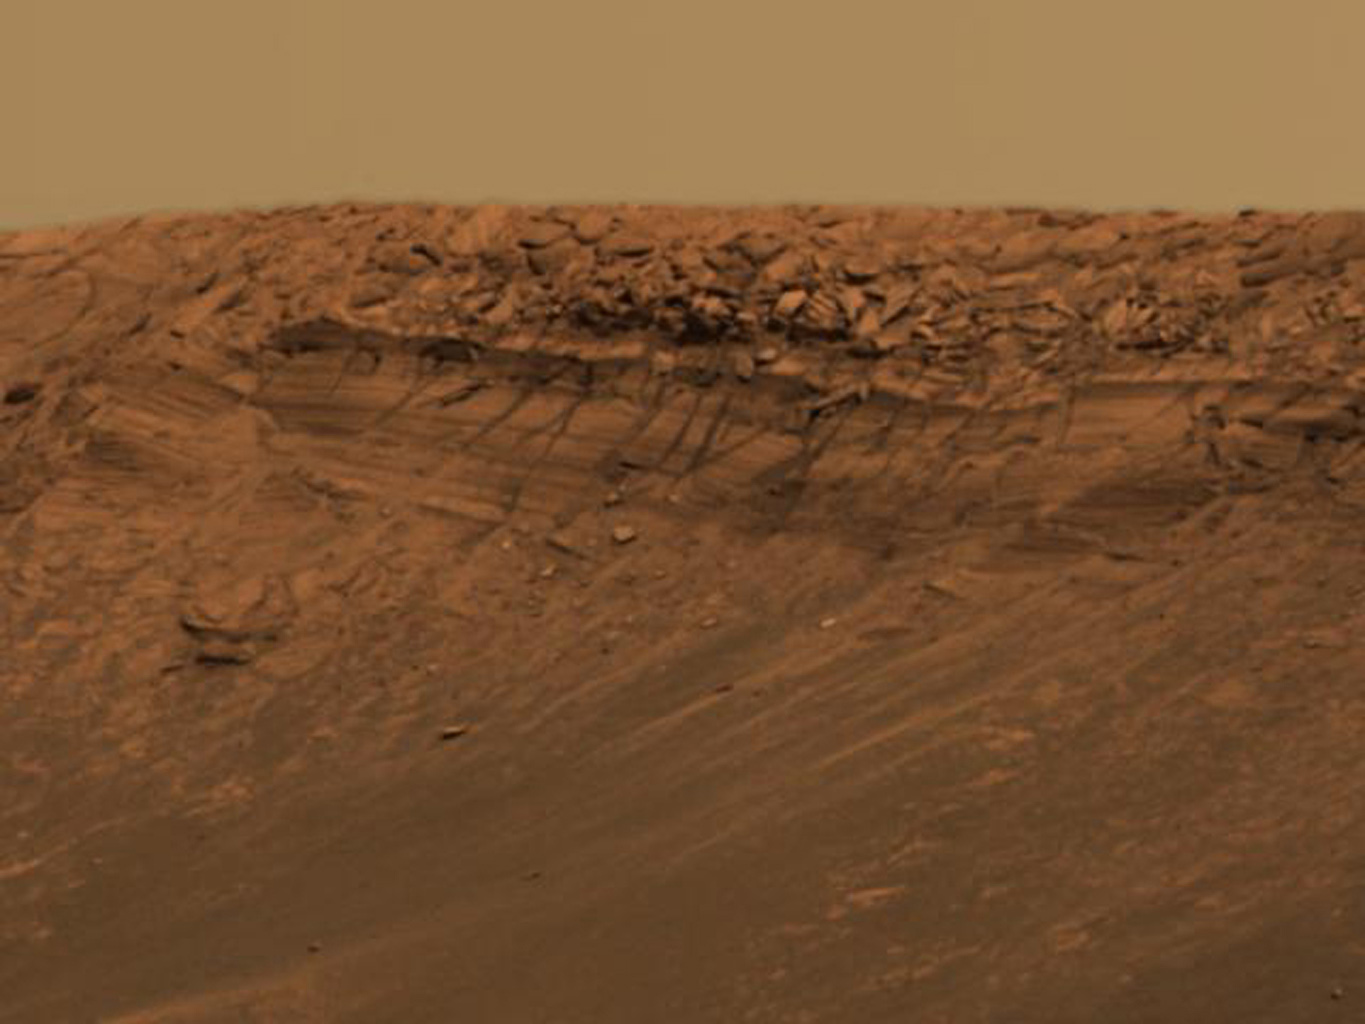 This approximate true-color image taken by the panoramic camera NASA's Mars Exploration Rover Opportunity highlights the vertical drop on a feature called 'Burns Cliff' within the impact crater known as 'Endurance.'